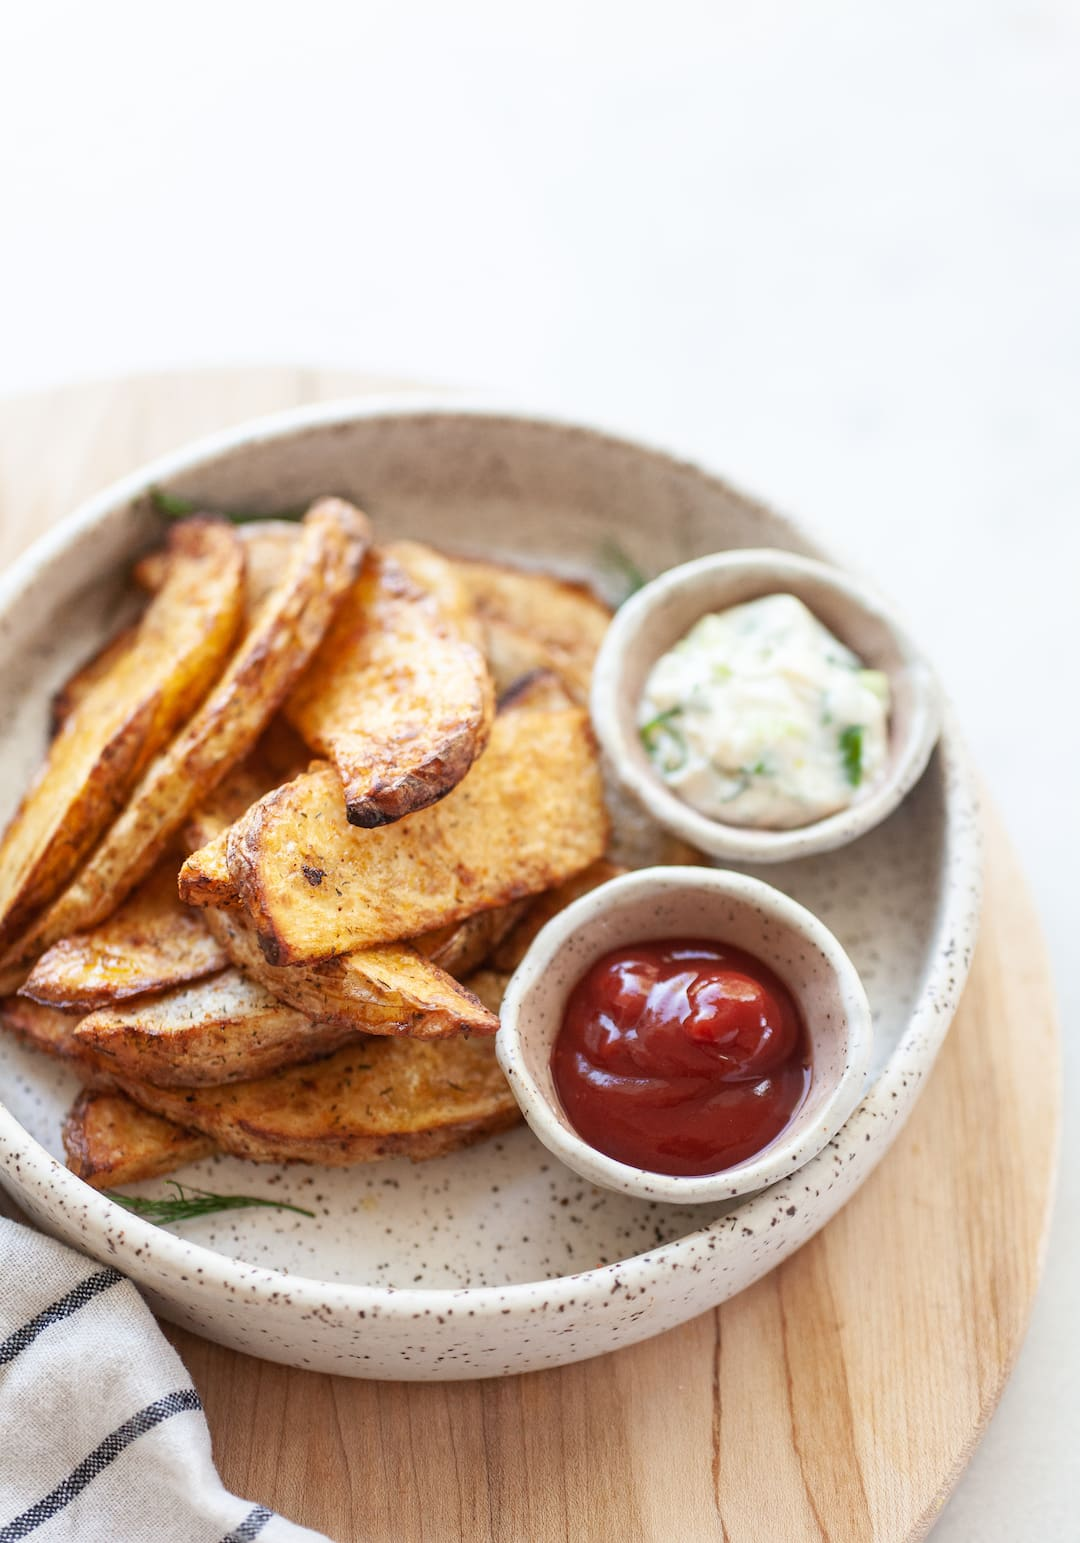 Plate of air fried potato wedges with two ramekins of ketchup and aioli dip